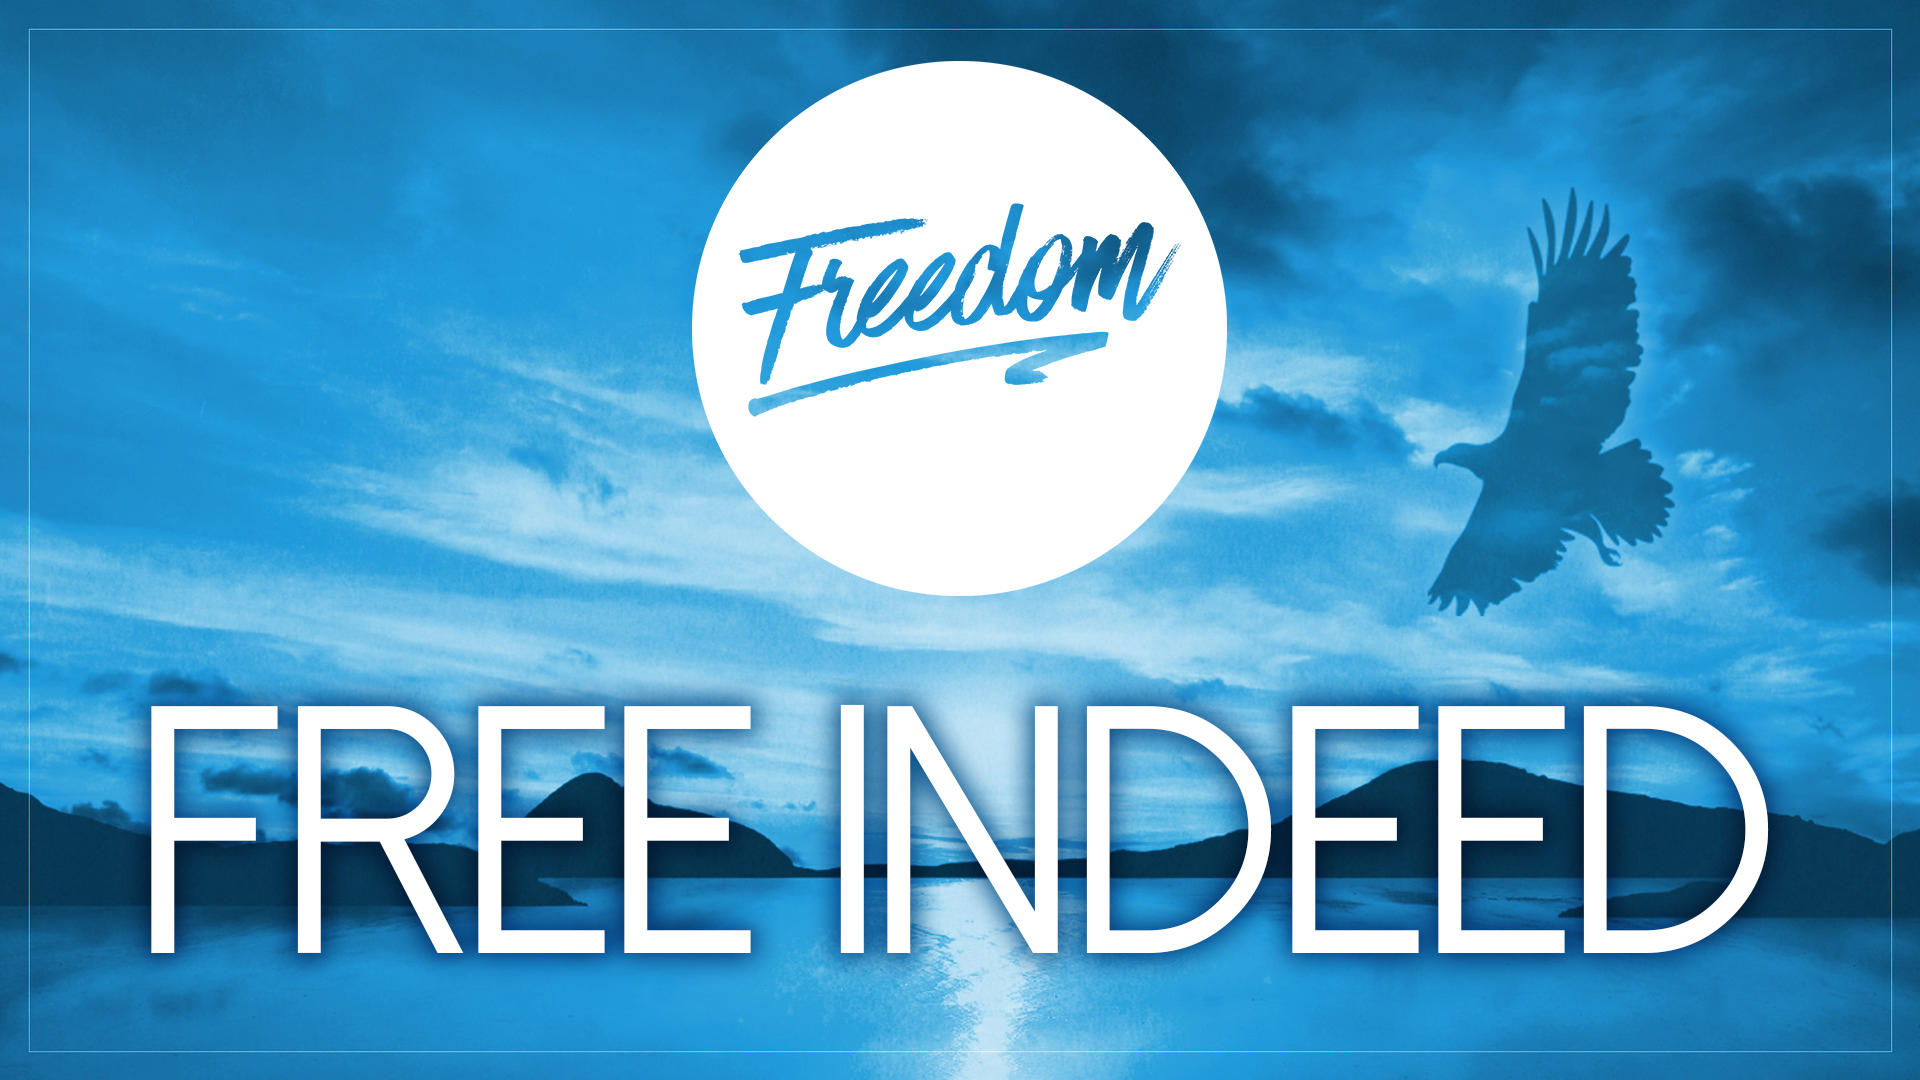 Freedom Series Part 1 - Free Indeed